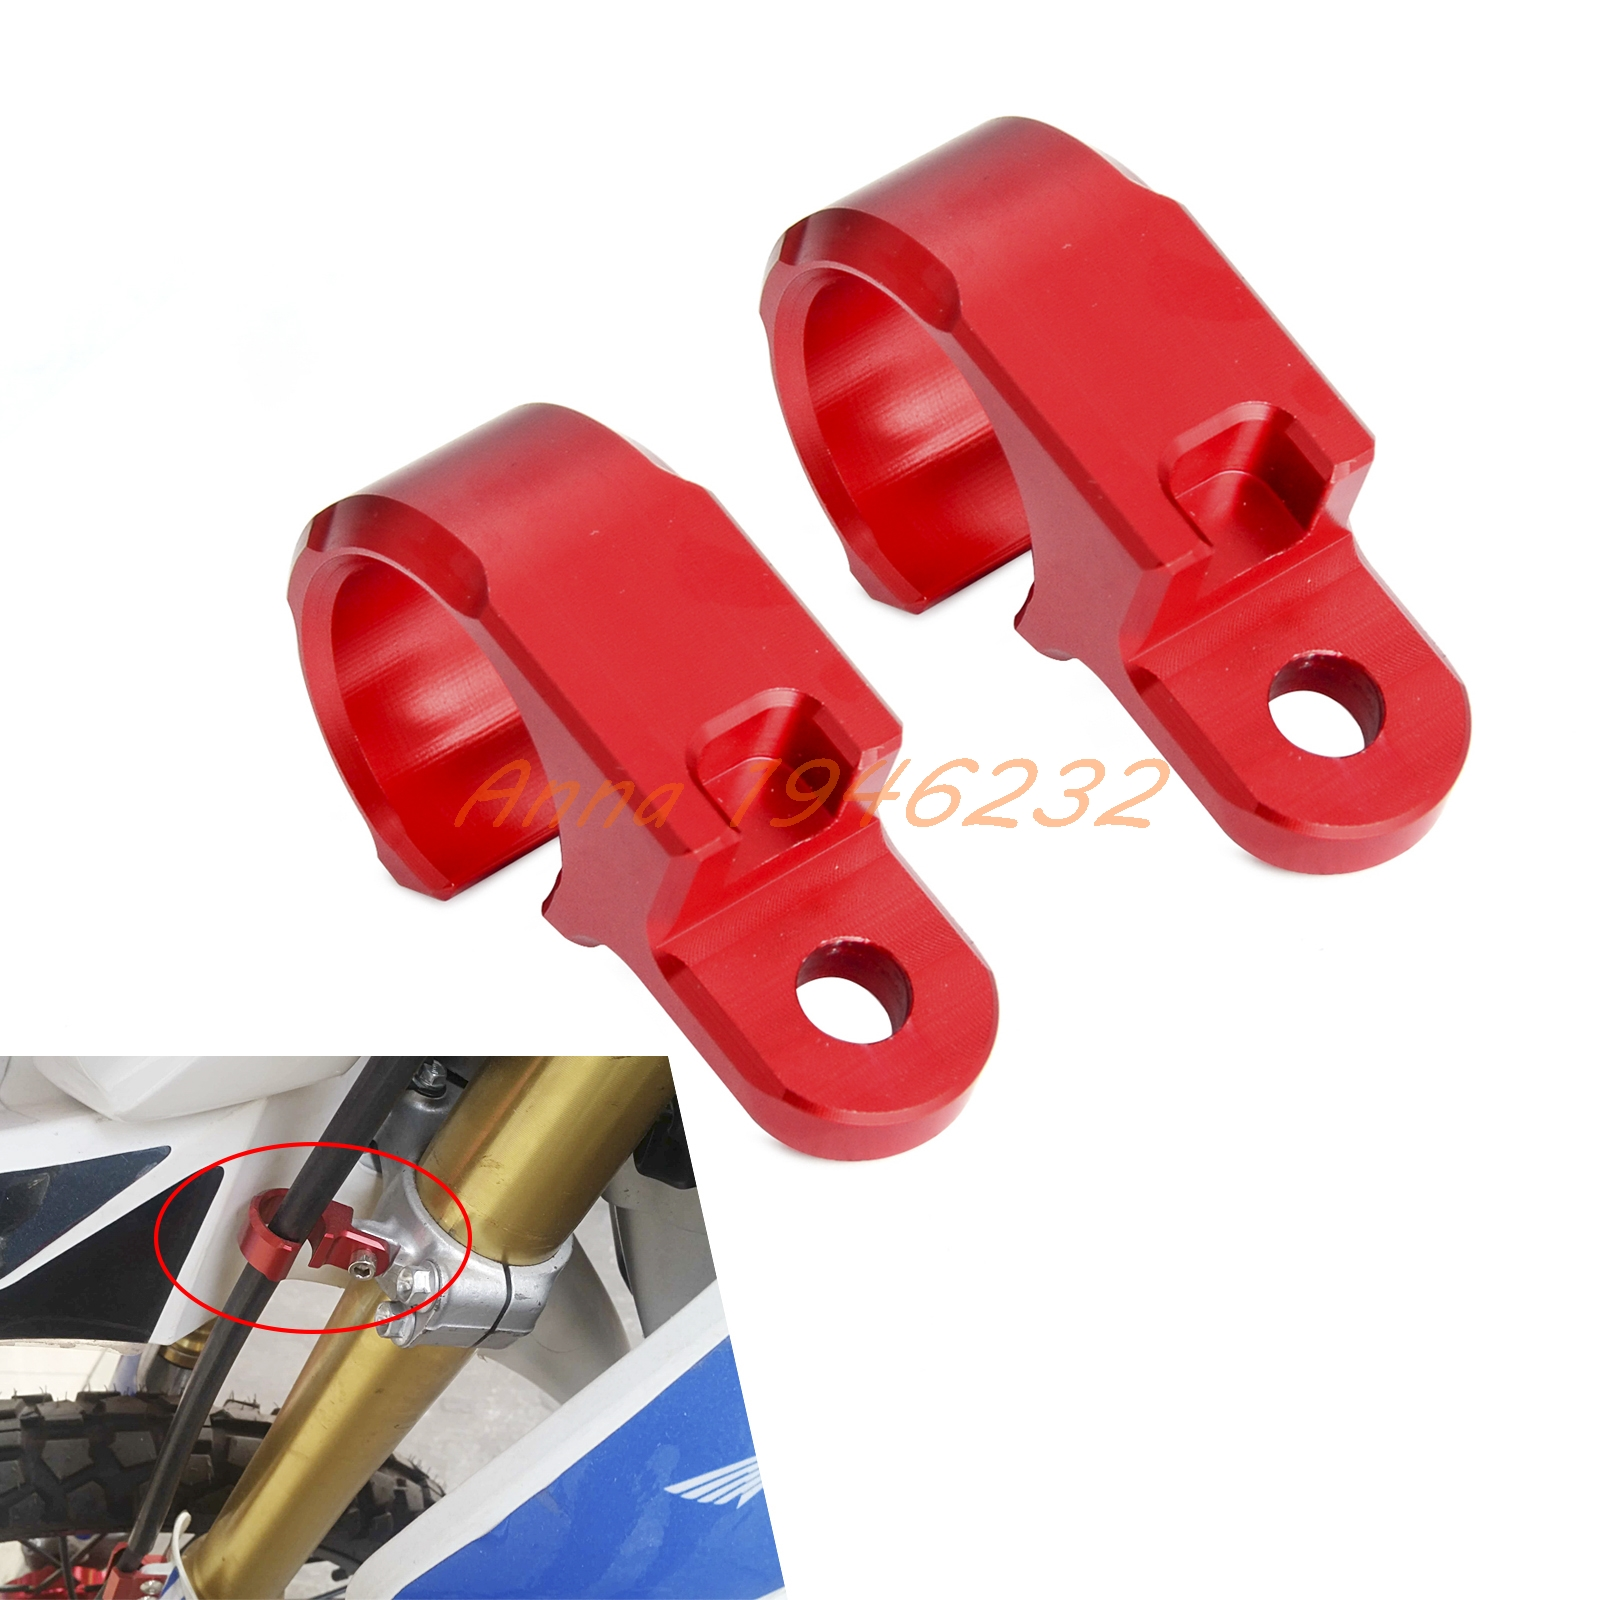 CNC Front Brake Line Hose Clamp Holder For Honda CRF250L CRF250M 2012 2013 2014 2015 cnc front brake line hose clamps holder for suzuki rm85 rm125 rm250 rmz250 rmz450 rmx450z drz400sm motorcycle